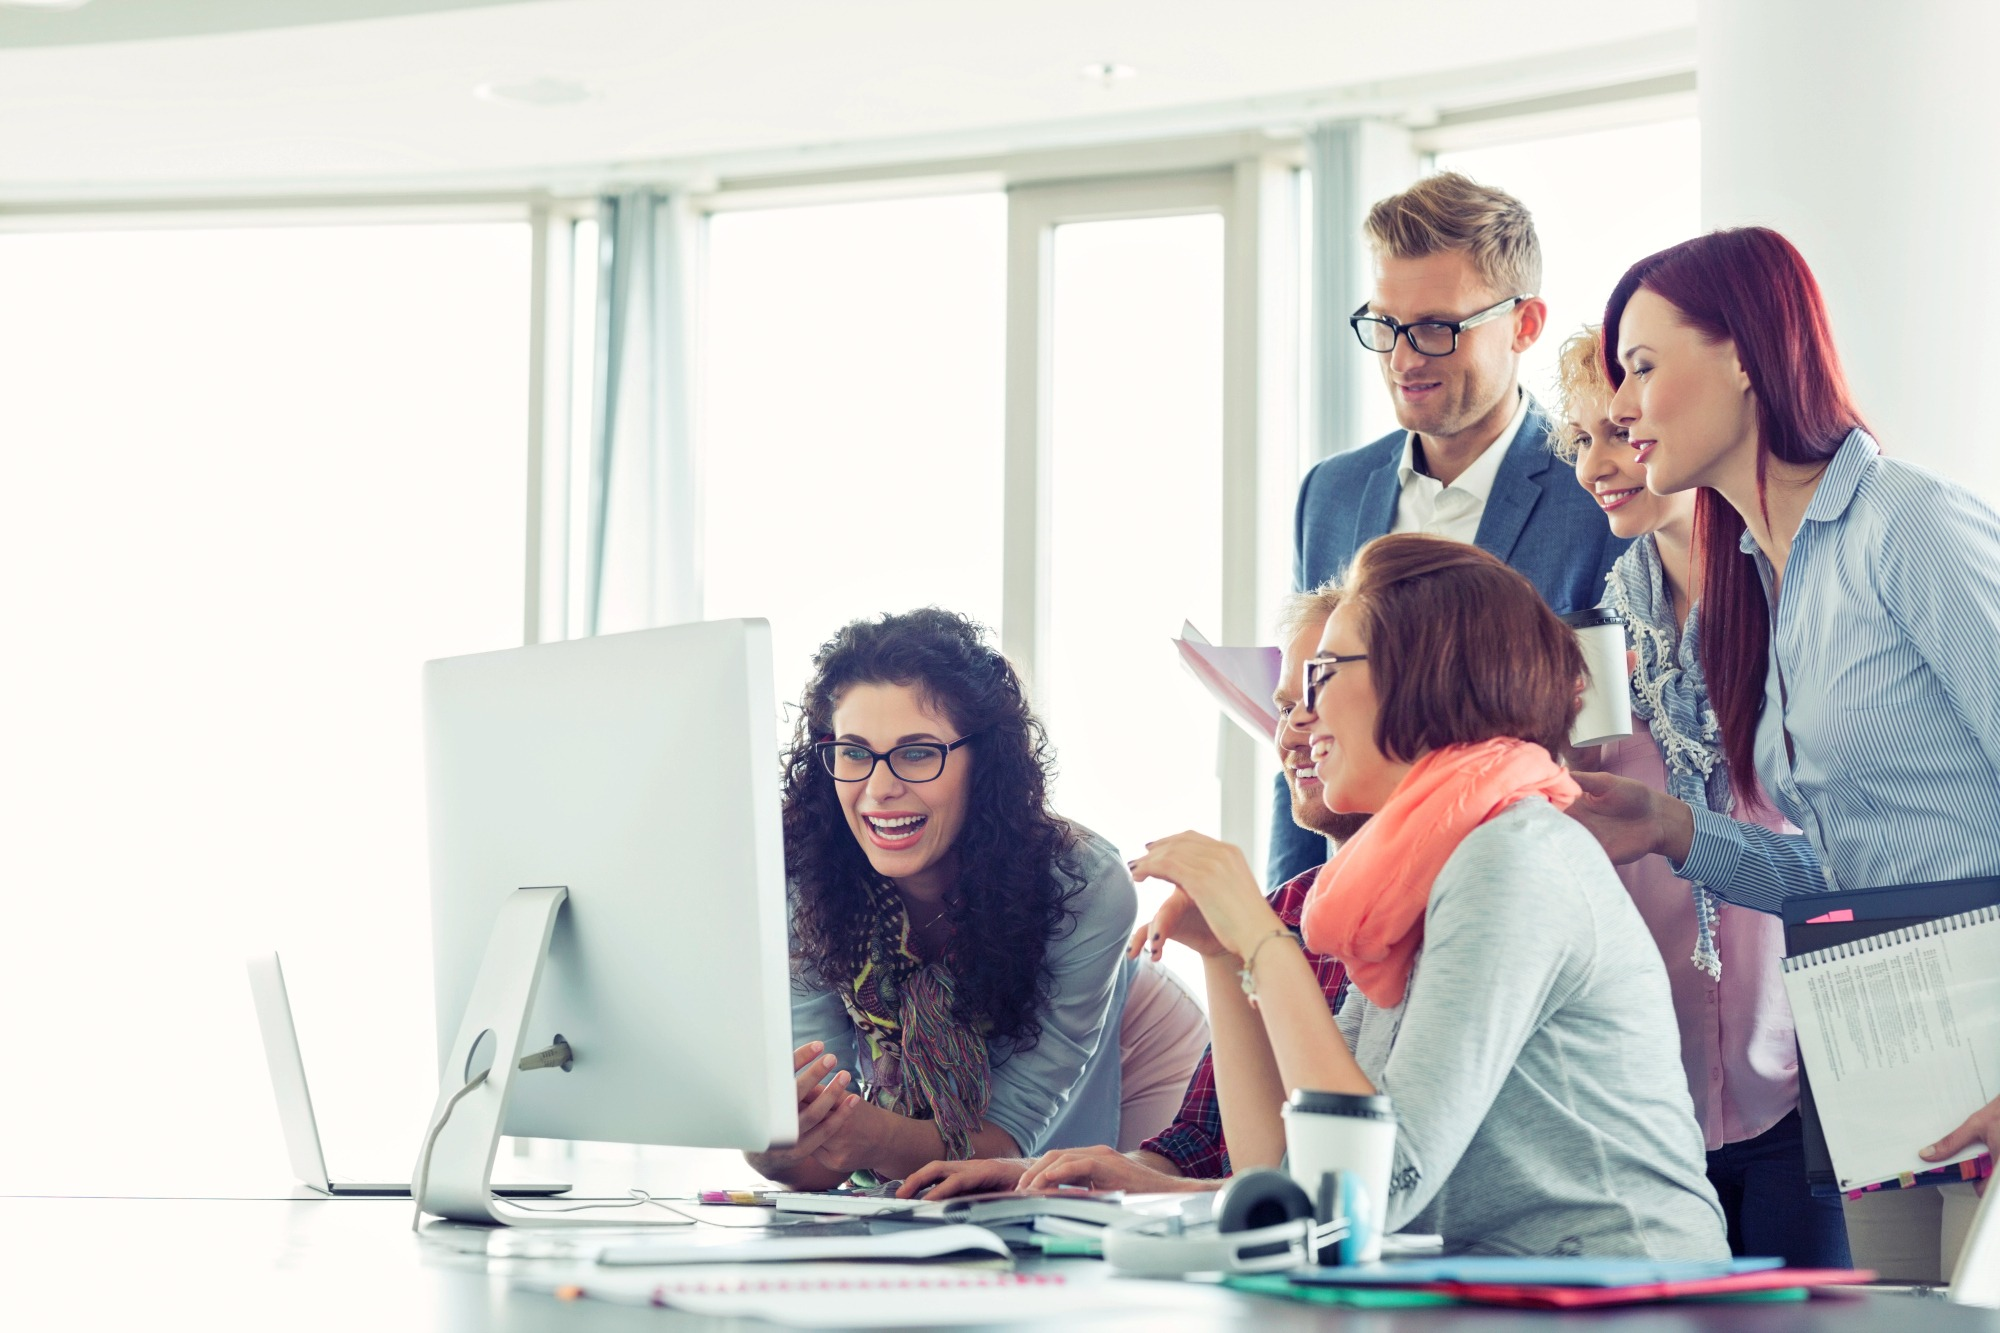 Smiling businesspeople working together at conference table